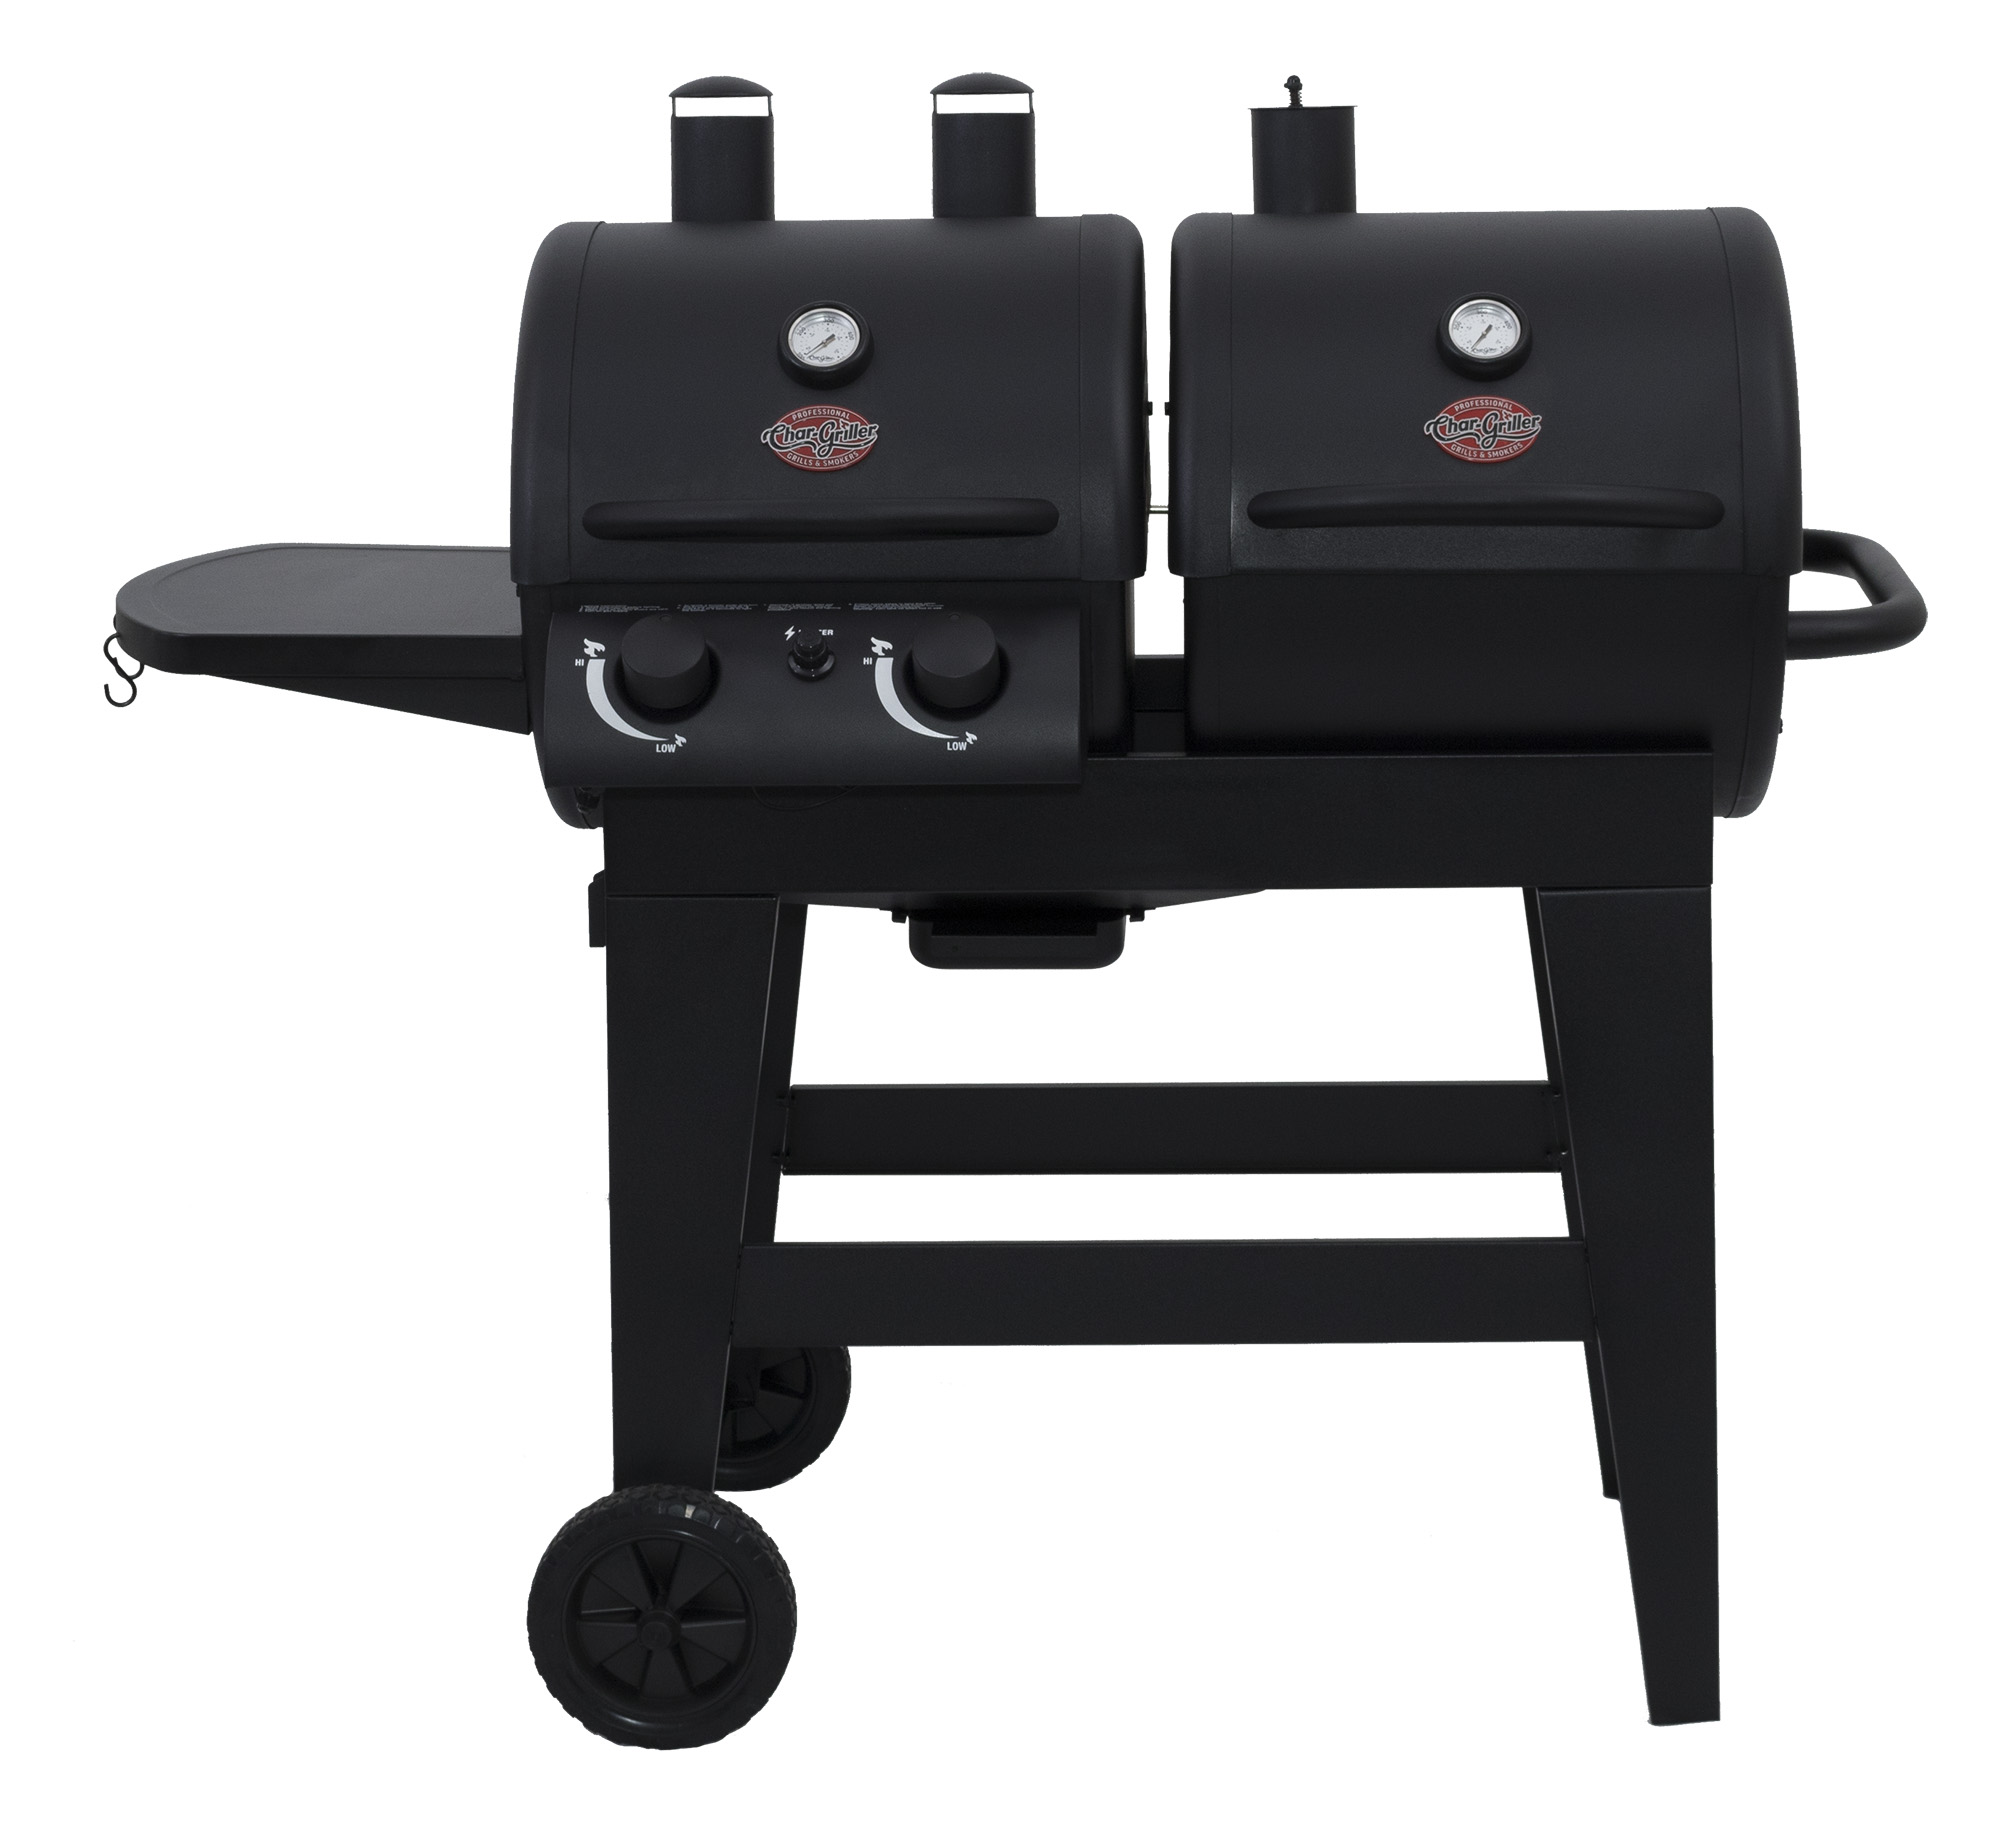 Char-Griller Dual 2 Burner Charcoal & Gas Grill, Black, E5030 by A & J Manufacturing